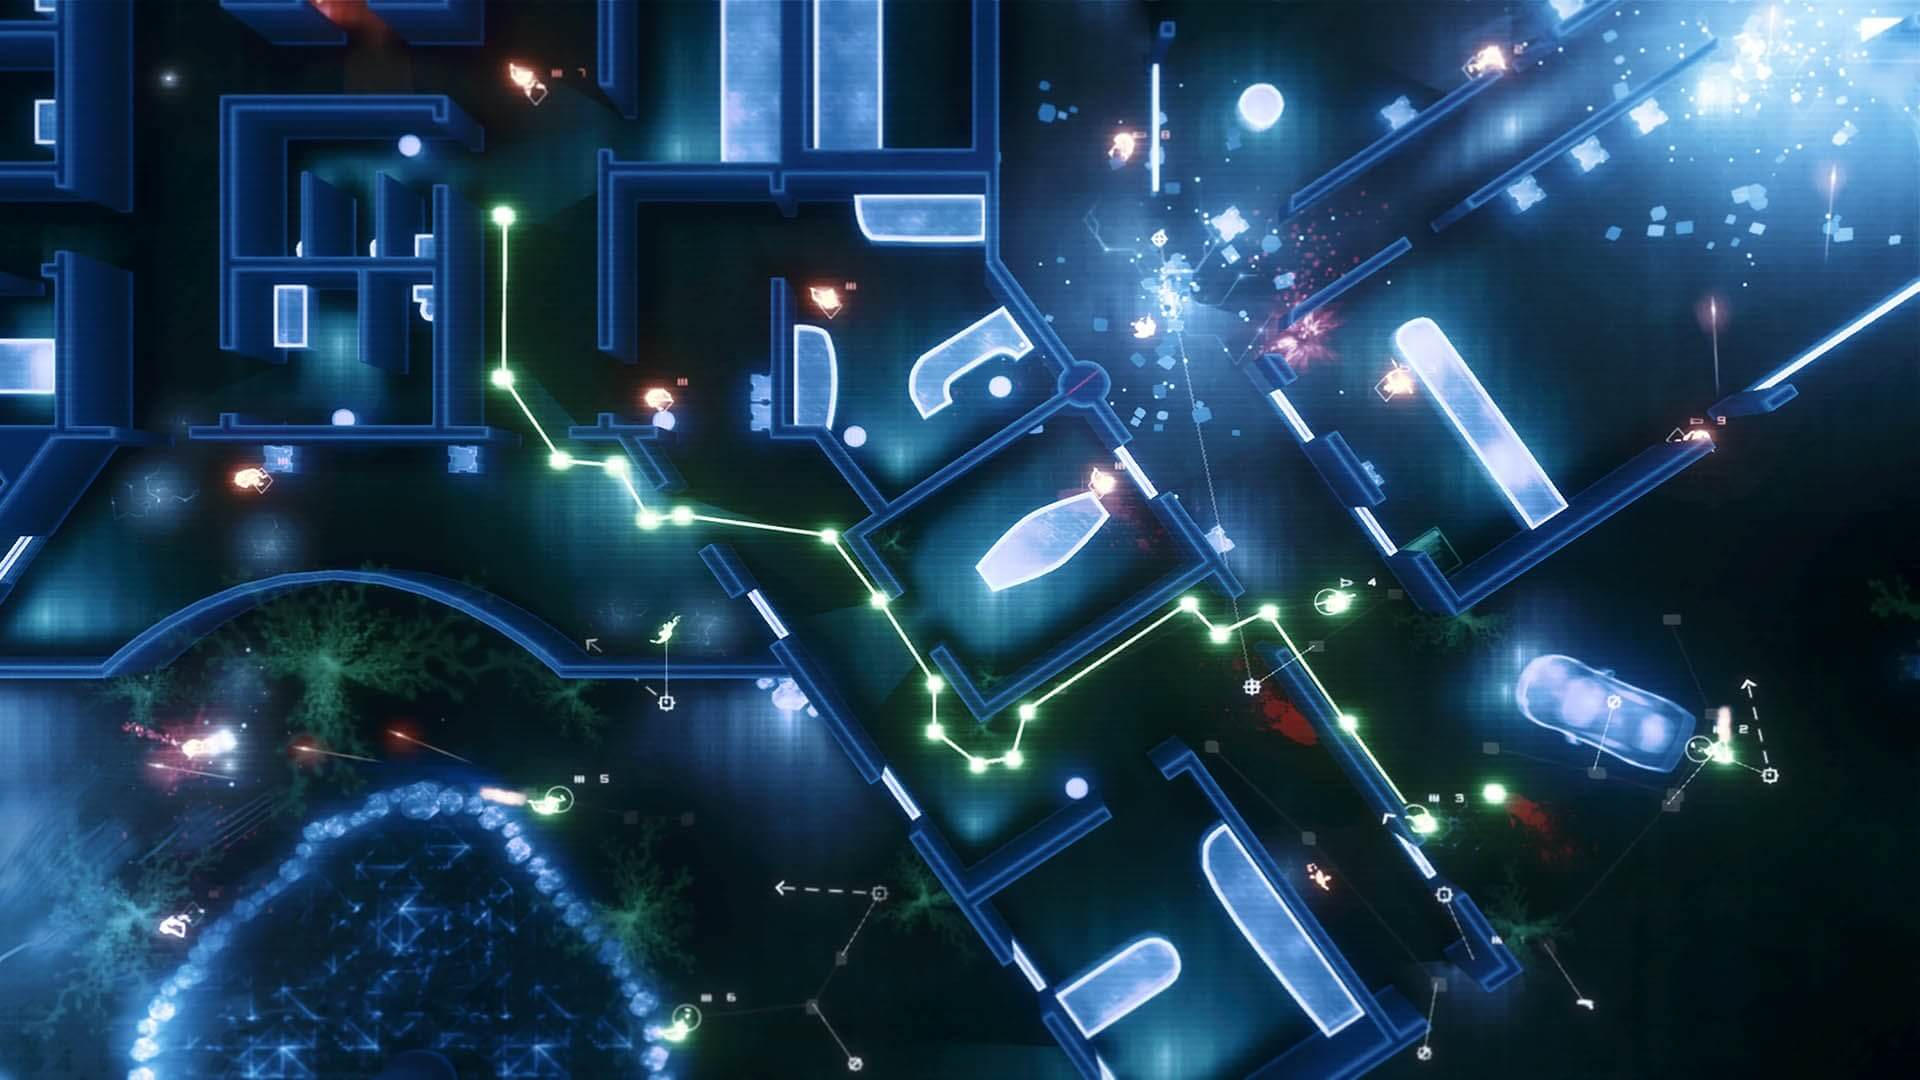 Frozen Synapse 2 download free